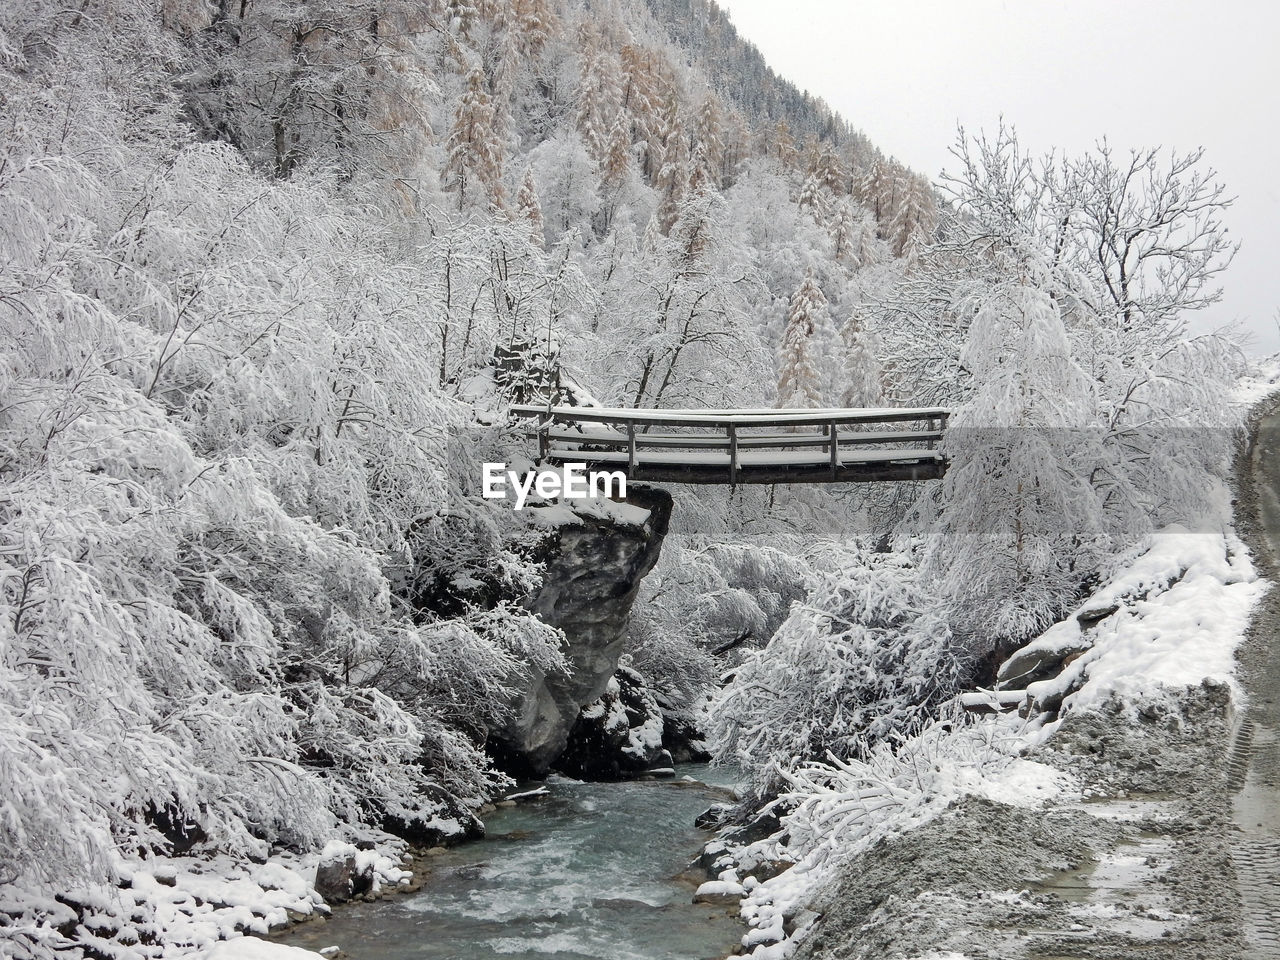 water, bridge, connection, transportation, beauty in nature, mountain, nature, scenics - nature, bridge - man made structure, day, no people, tranquility, built structure, cold temperature, river, architecture, tree, tranquil scene, winter, outdoors, footbridge, flowing water